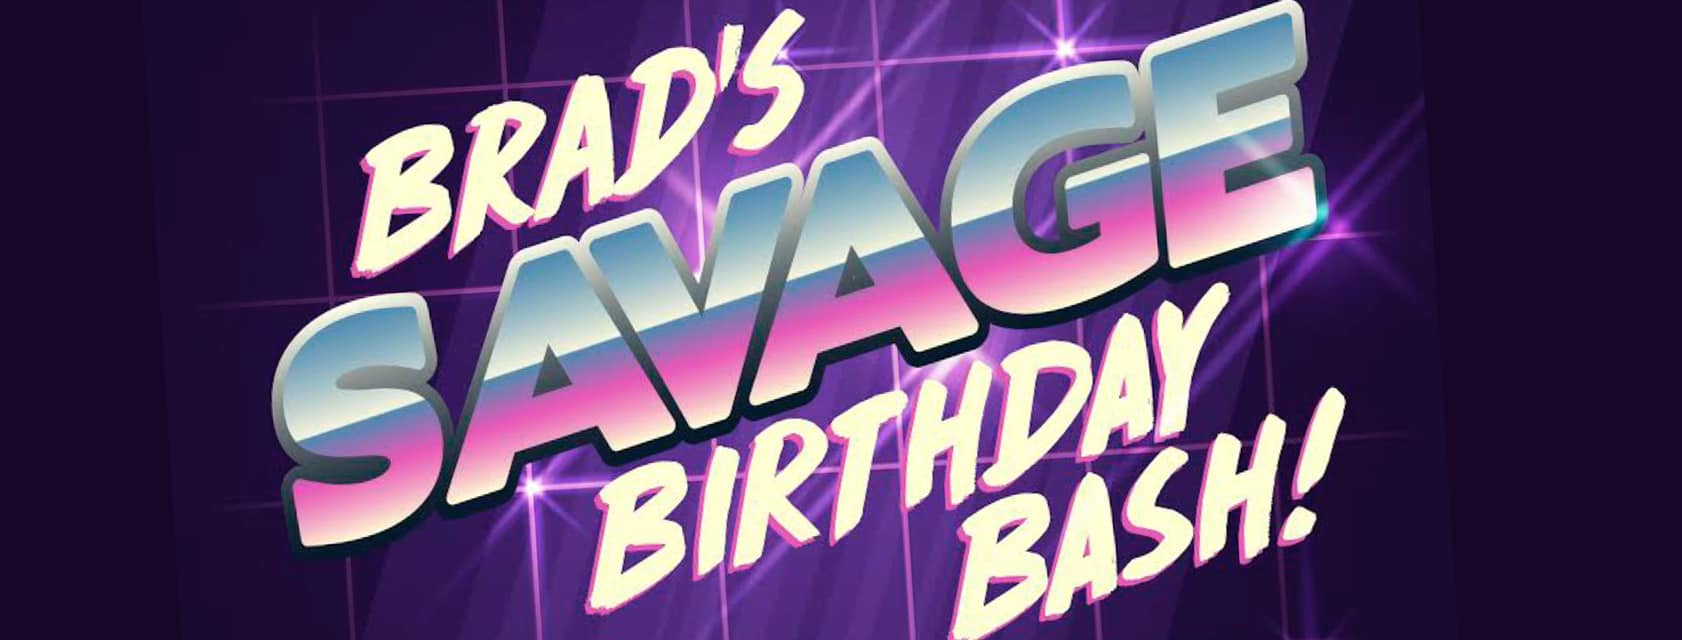 Brad's Savage Birthday Bash!